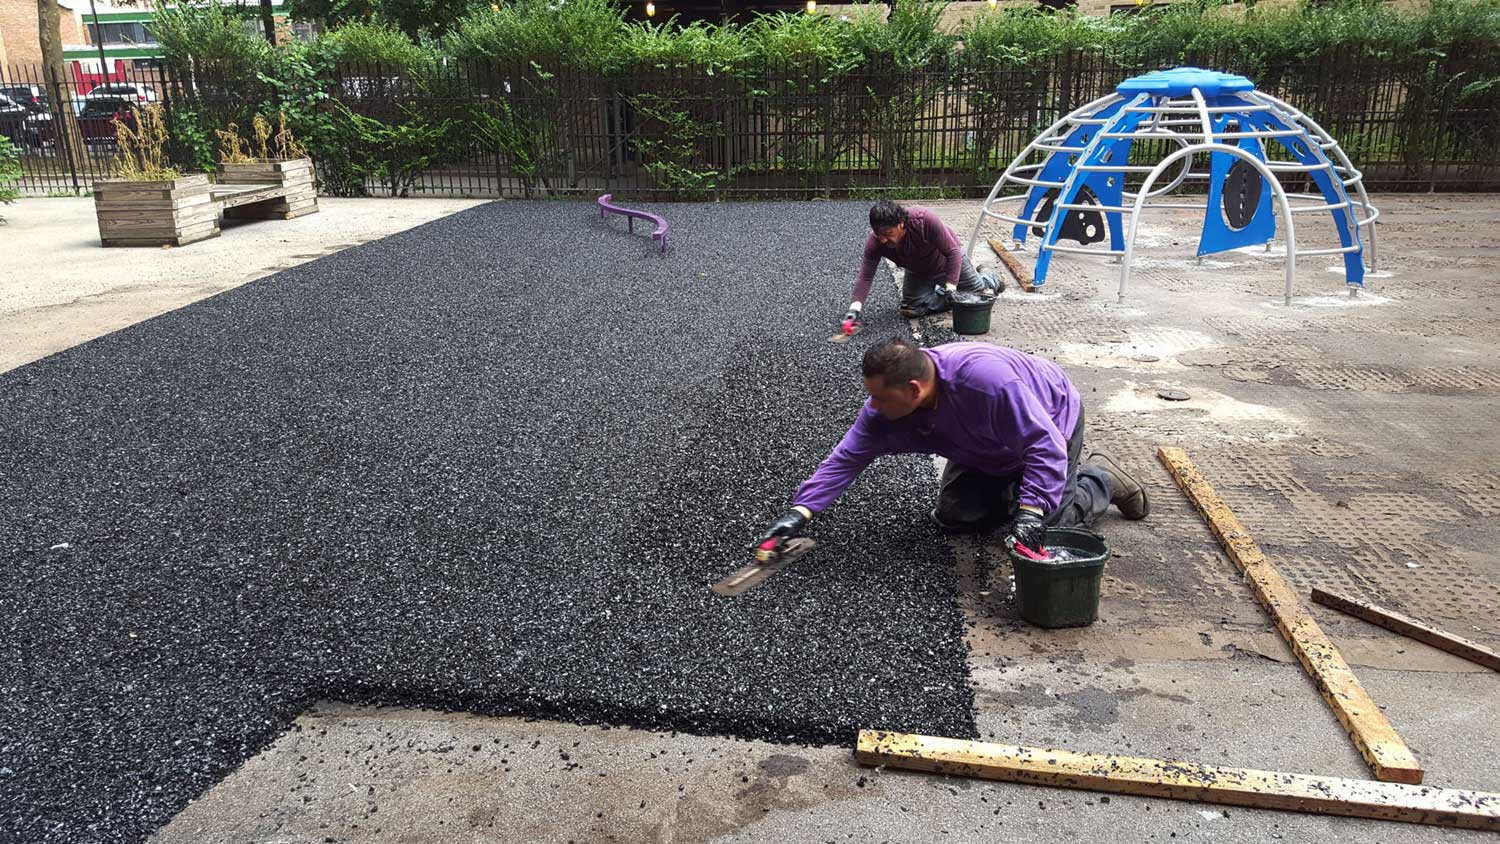 Replace Rubber Tiles with Poured Rubber Playground Floor | adventureTURF